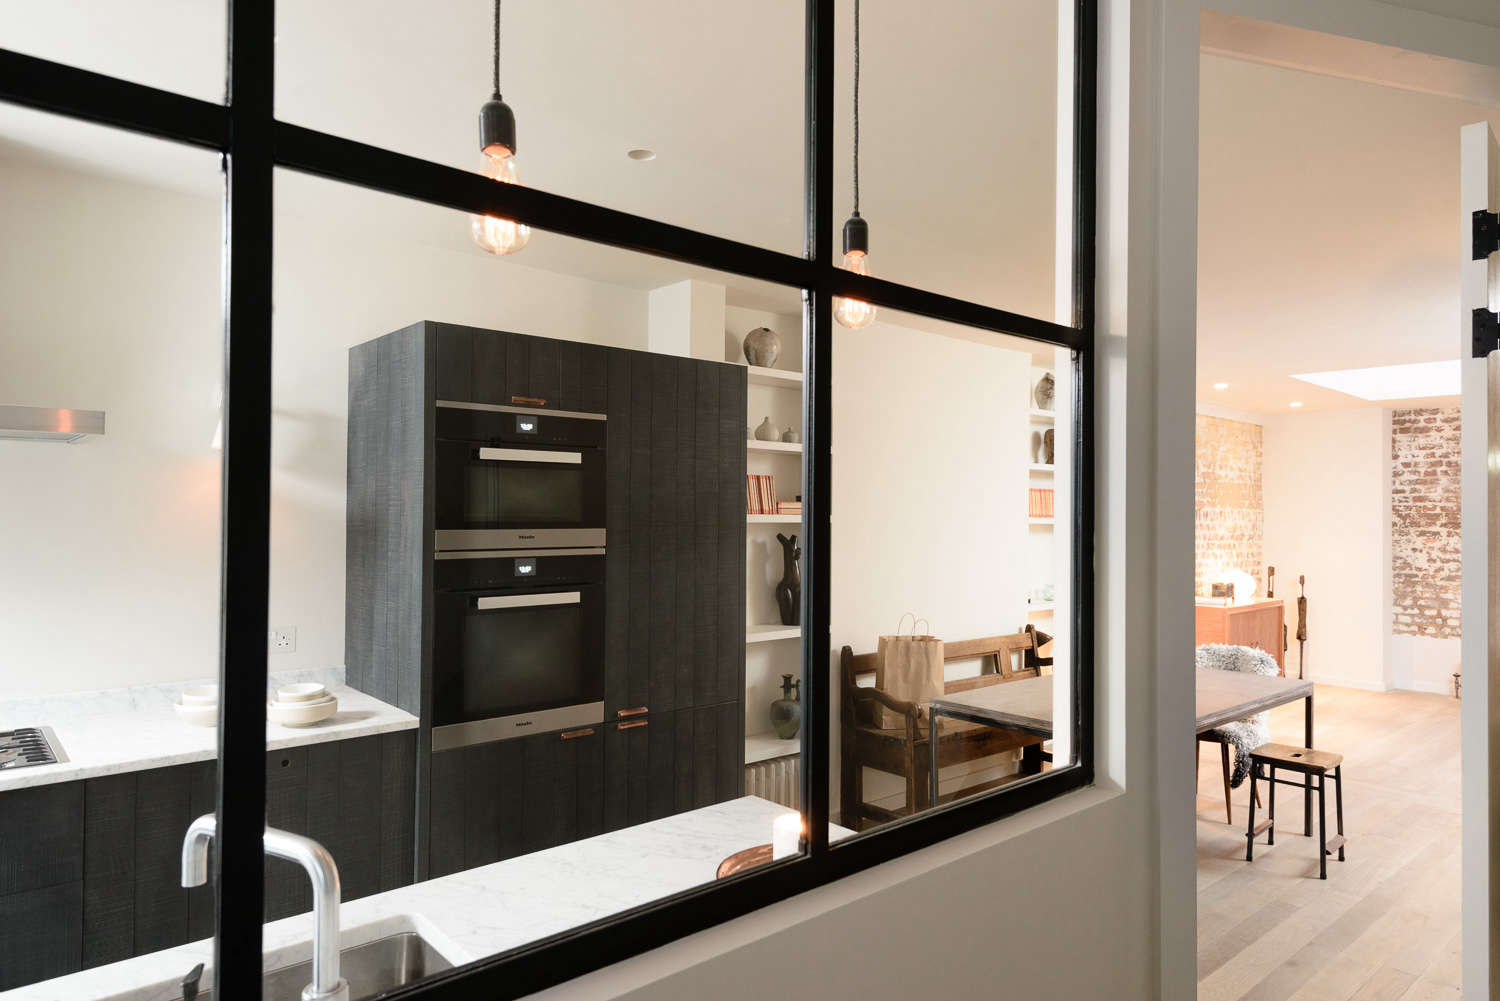 Black wood paneled cabinets and marble counters in the Marylebone kitchen by Simon Cox for DeVol | Remodelista